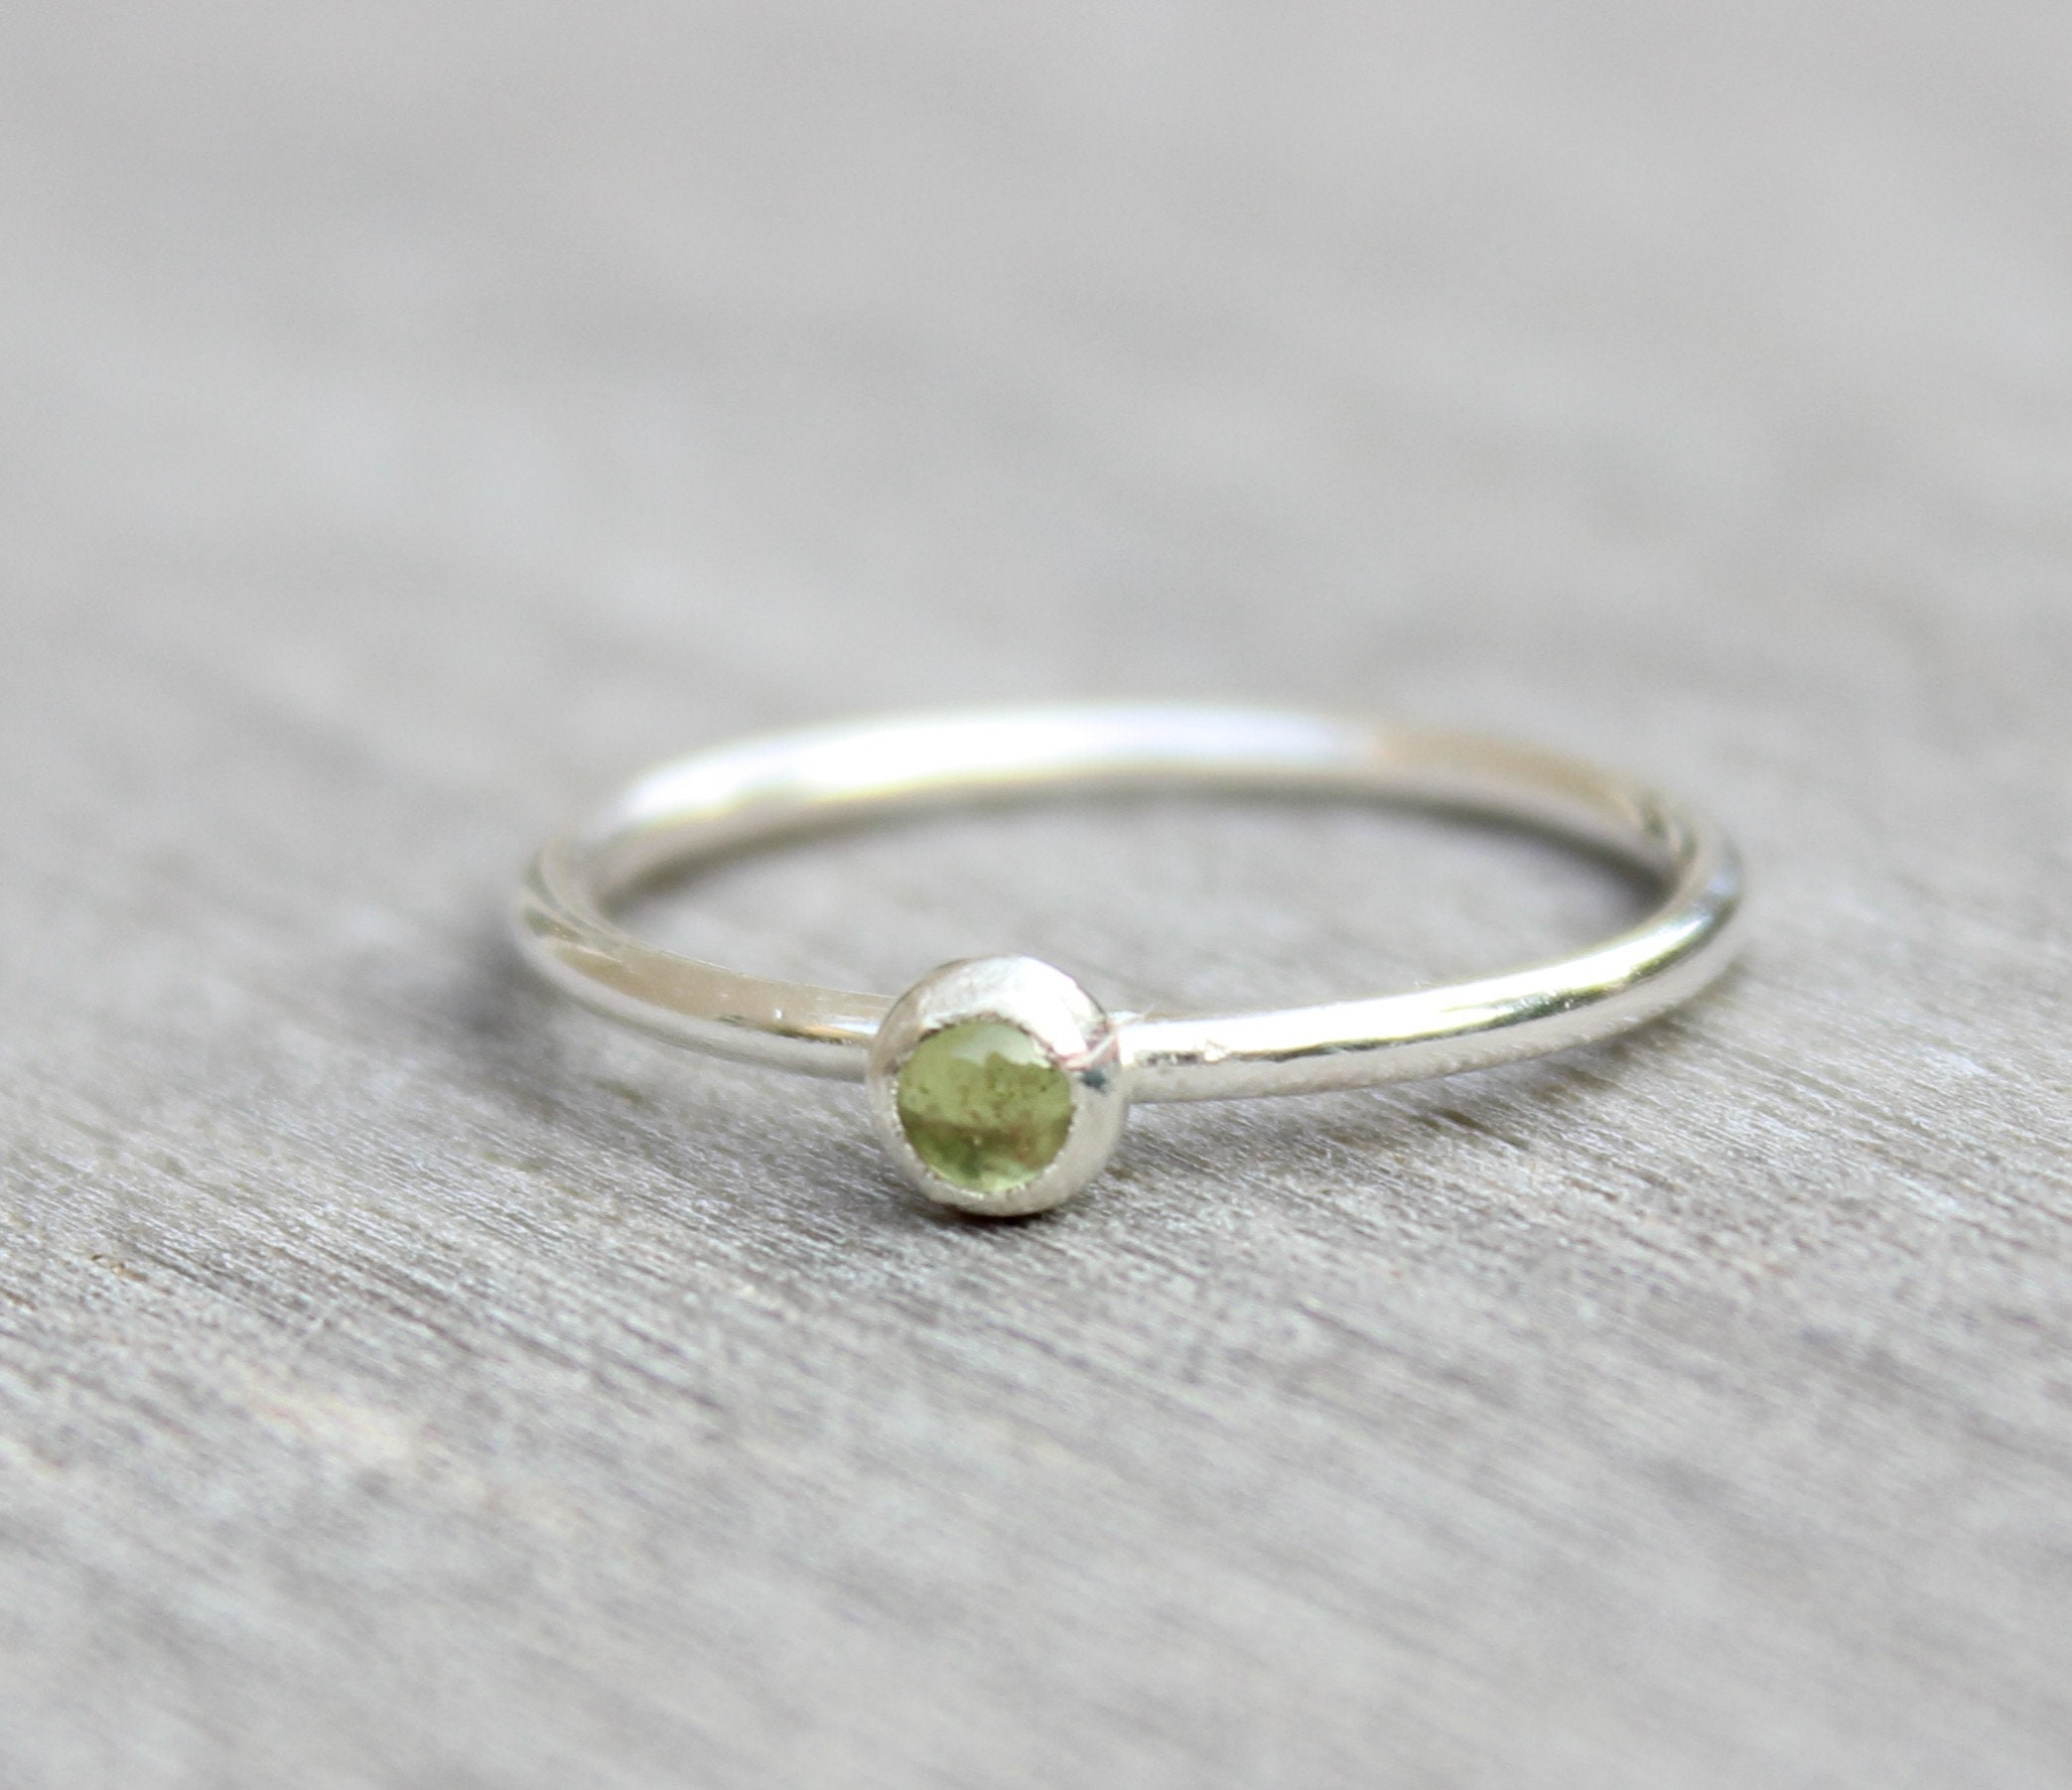 24cb5e43f1921 Sterling Silver Peridot Ring // Silver Peridot Stacking Ring // August ...